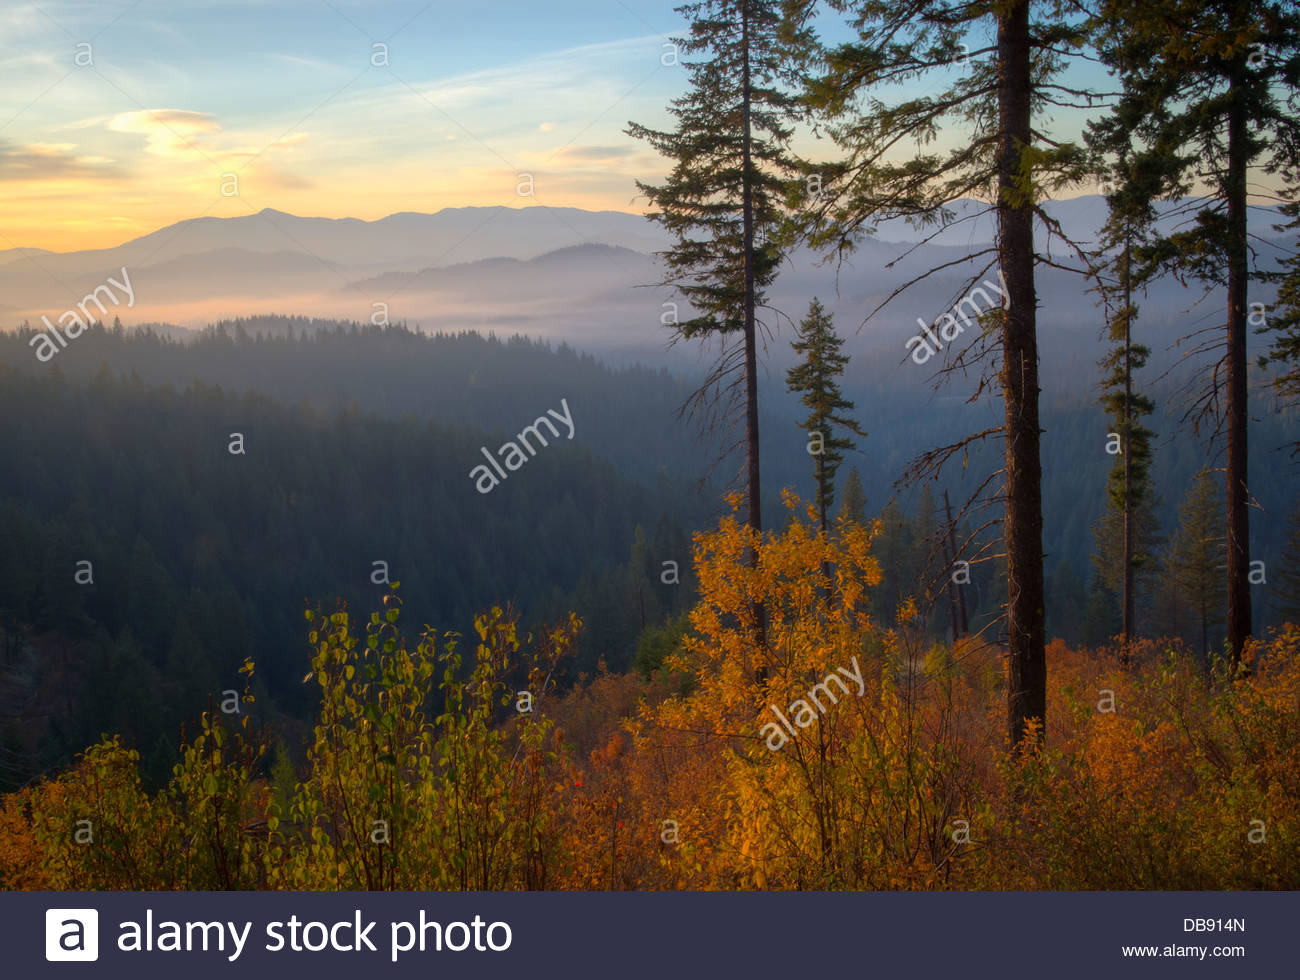 Idaho, North, Coeur d'Alene. An autumn view at dawn over the Coeur d'Alene National Forest near 4th of July - Stock Image